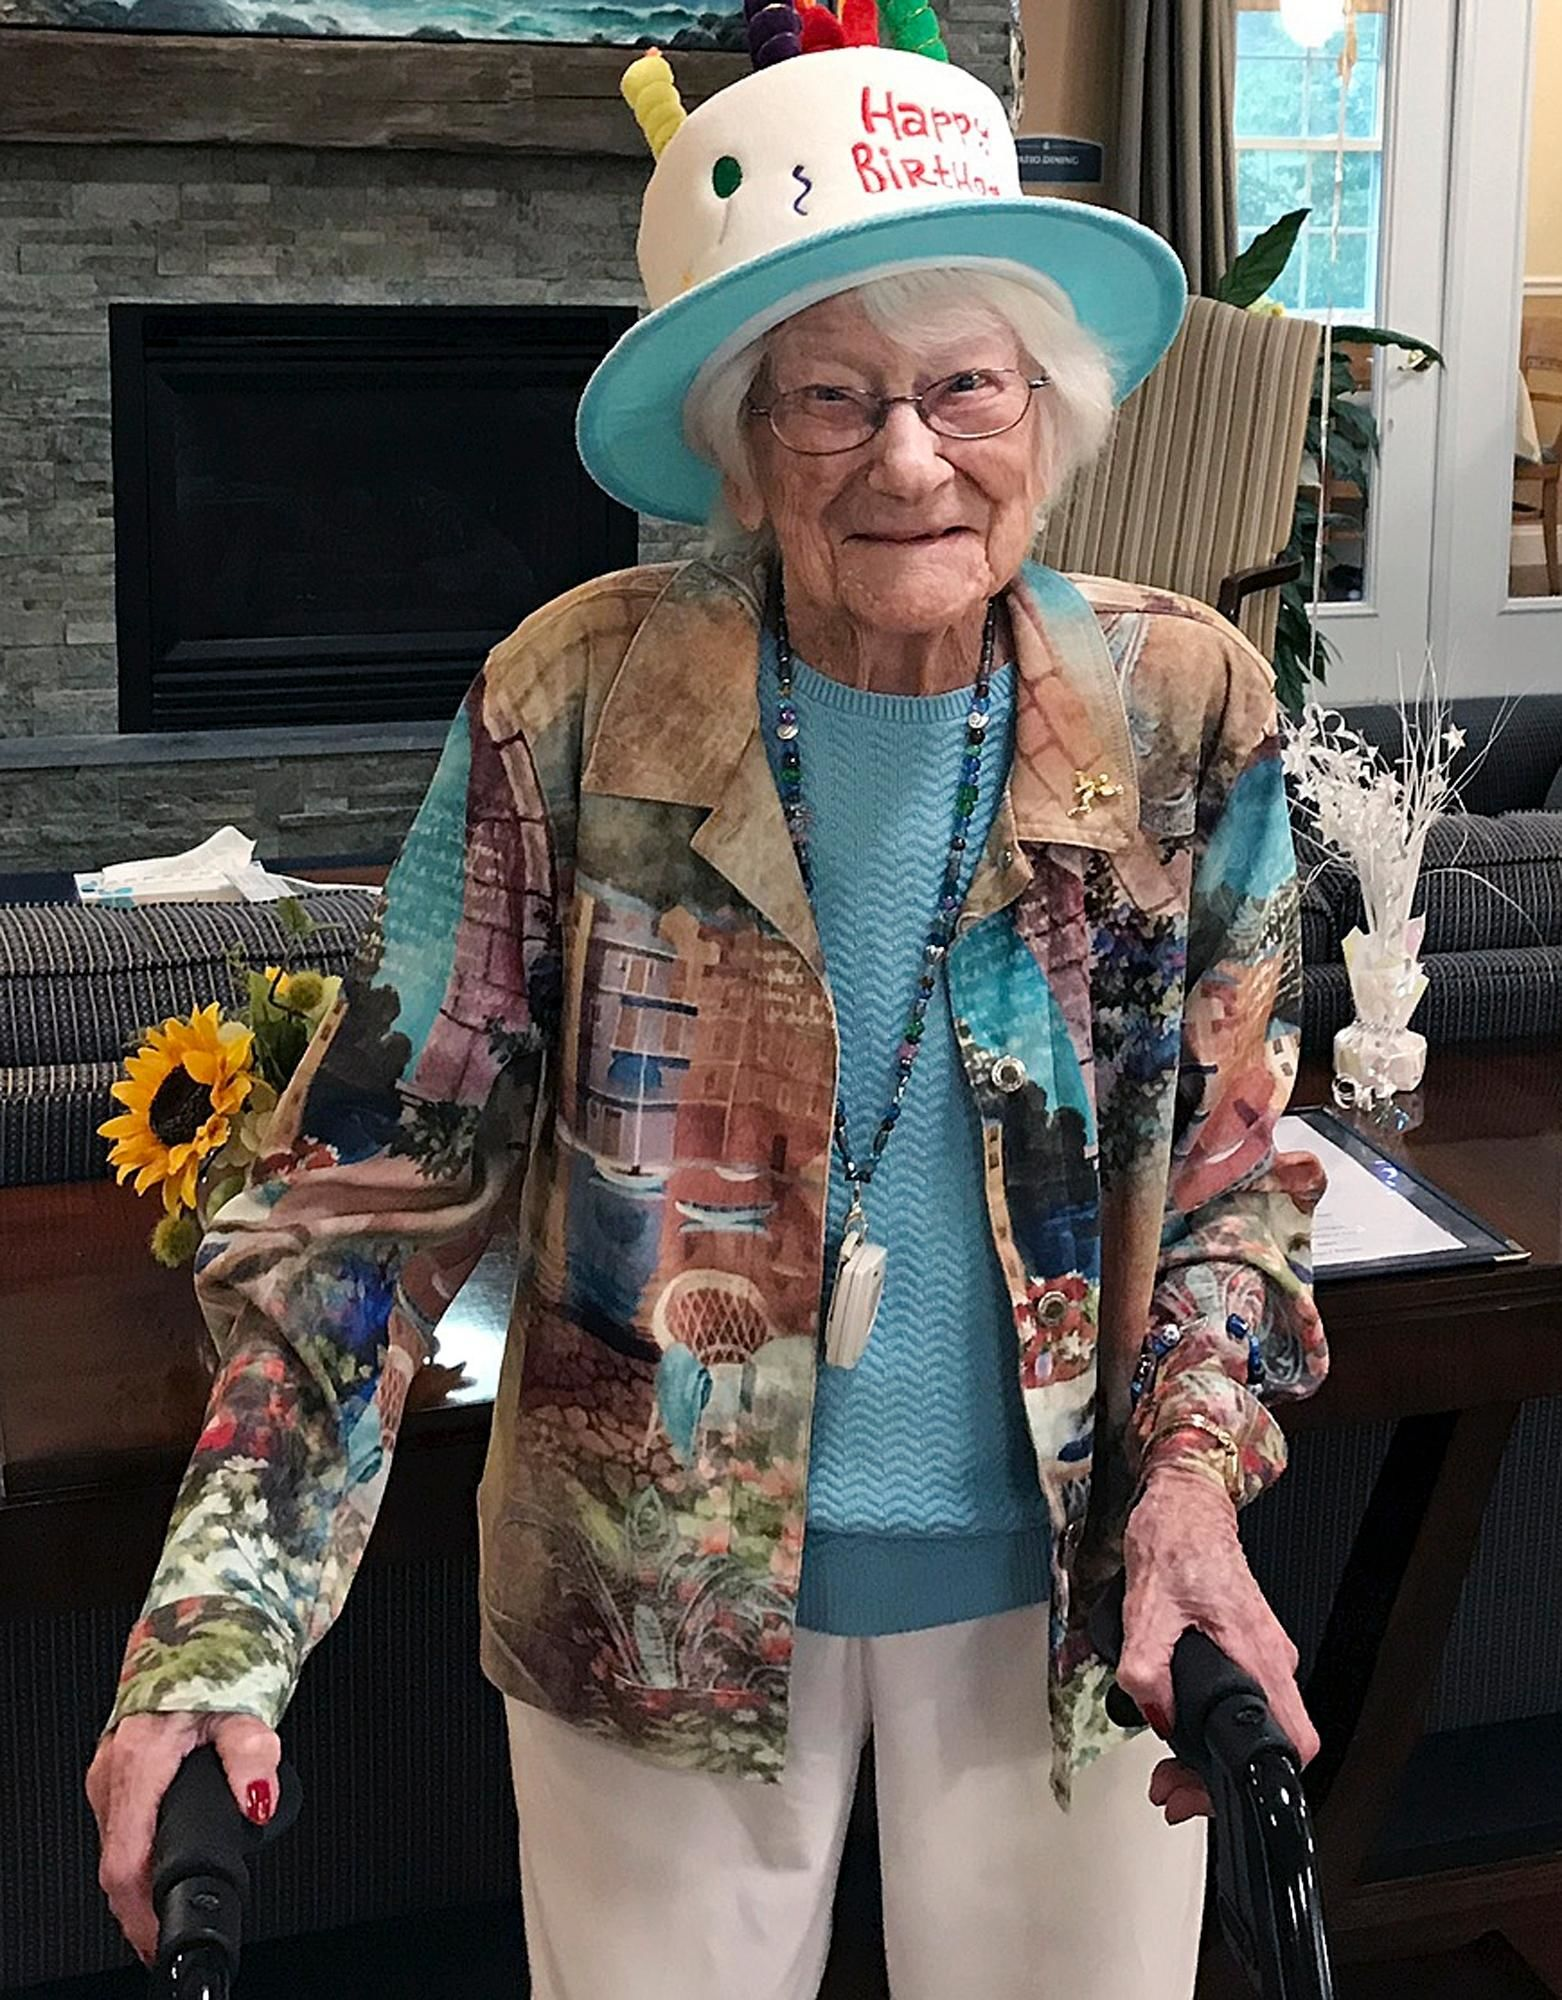 In this photo provided by Tony Venti, Hazel Nilson celebrates her 111th birthday, Wednesday, Aug. 21, 2019, at Sunapee Cove in Sunapee, N.H.(Tony Venti via AP)